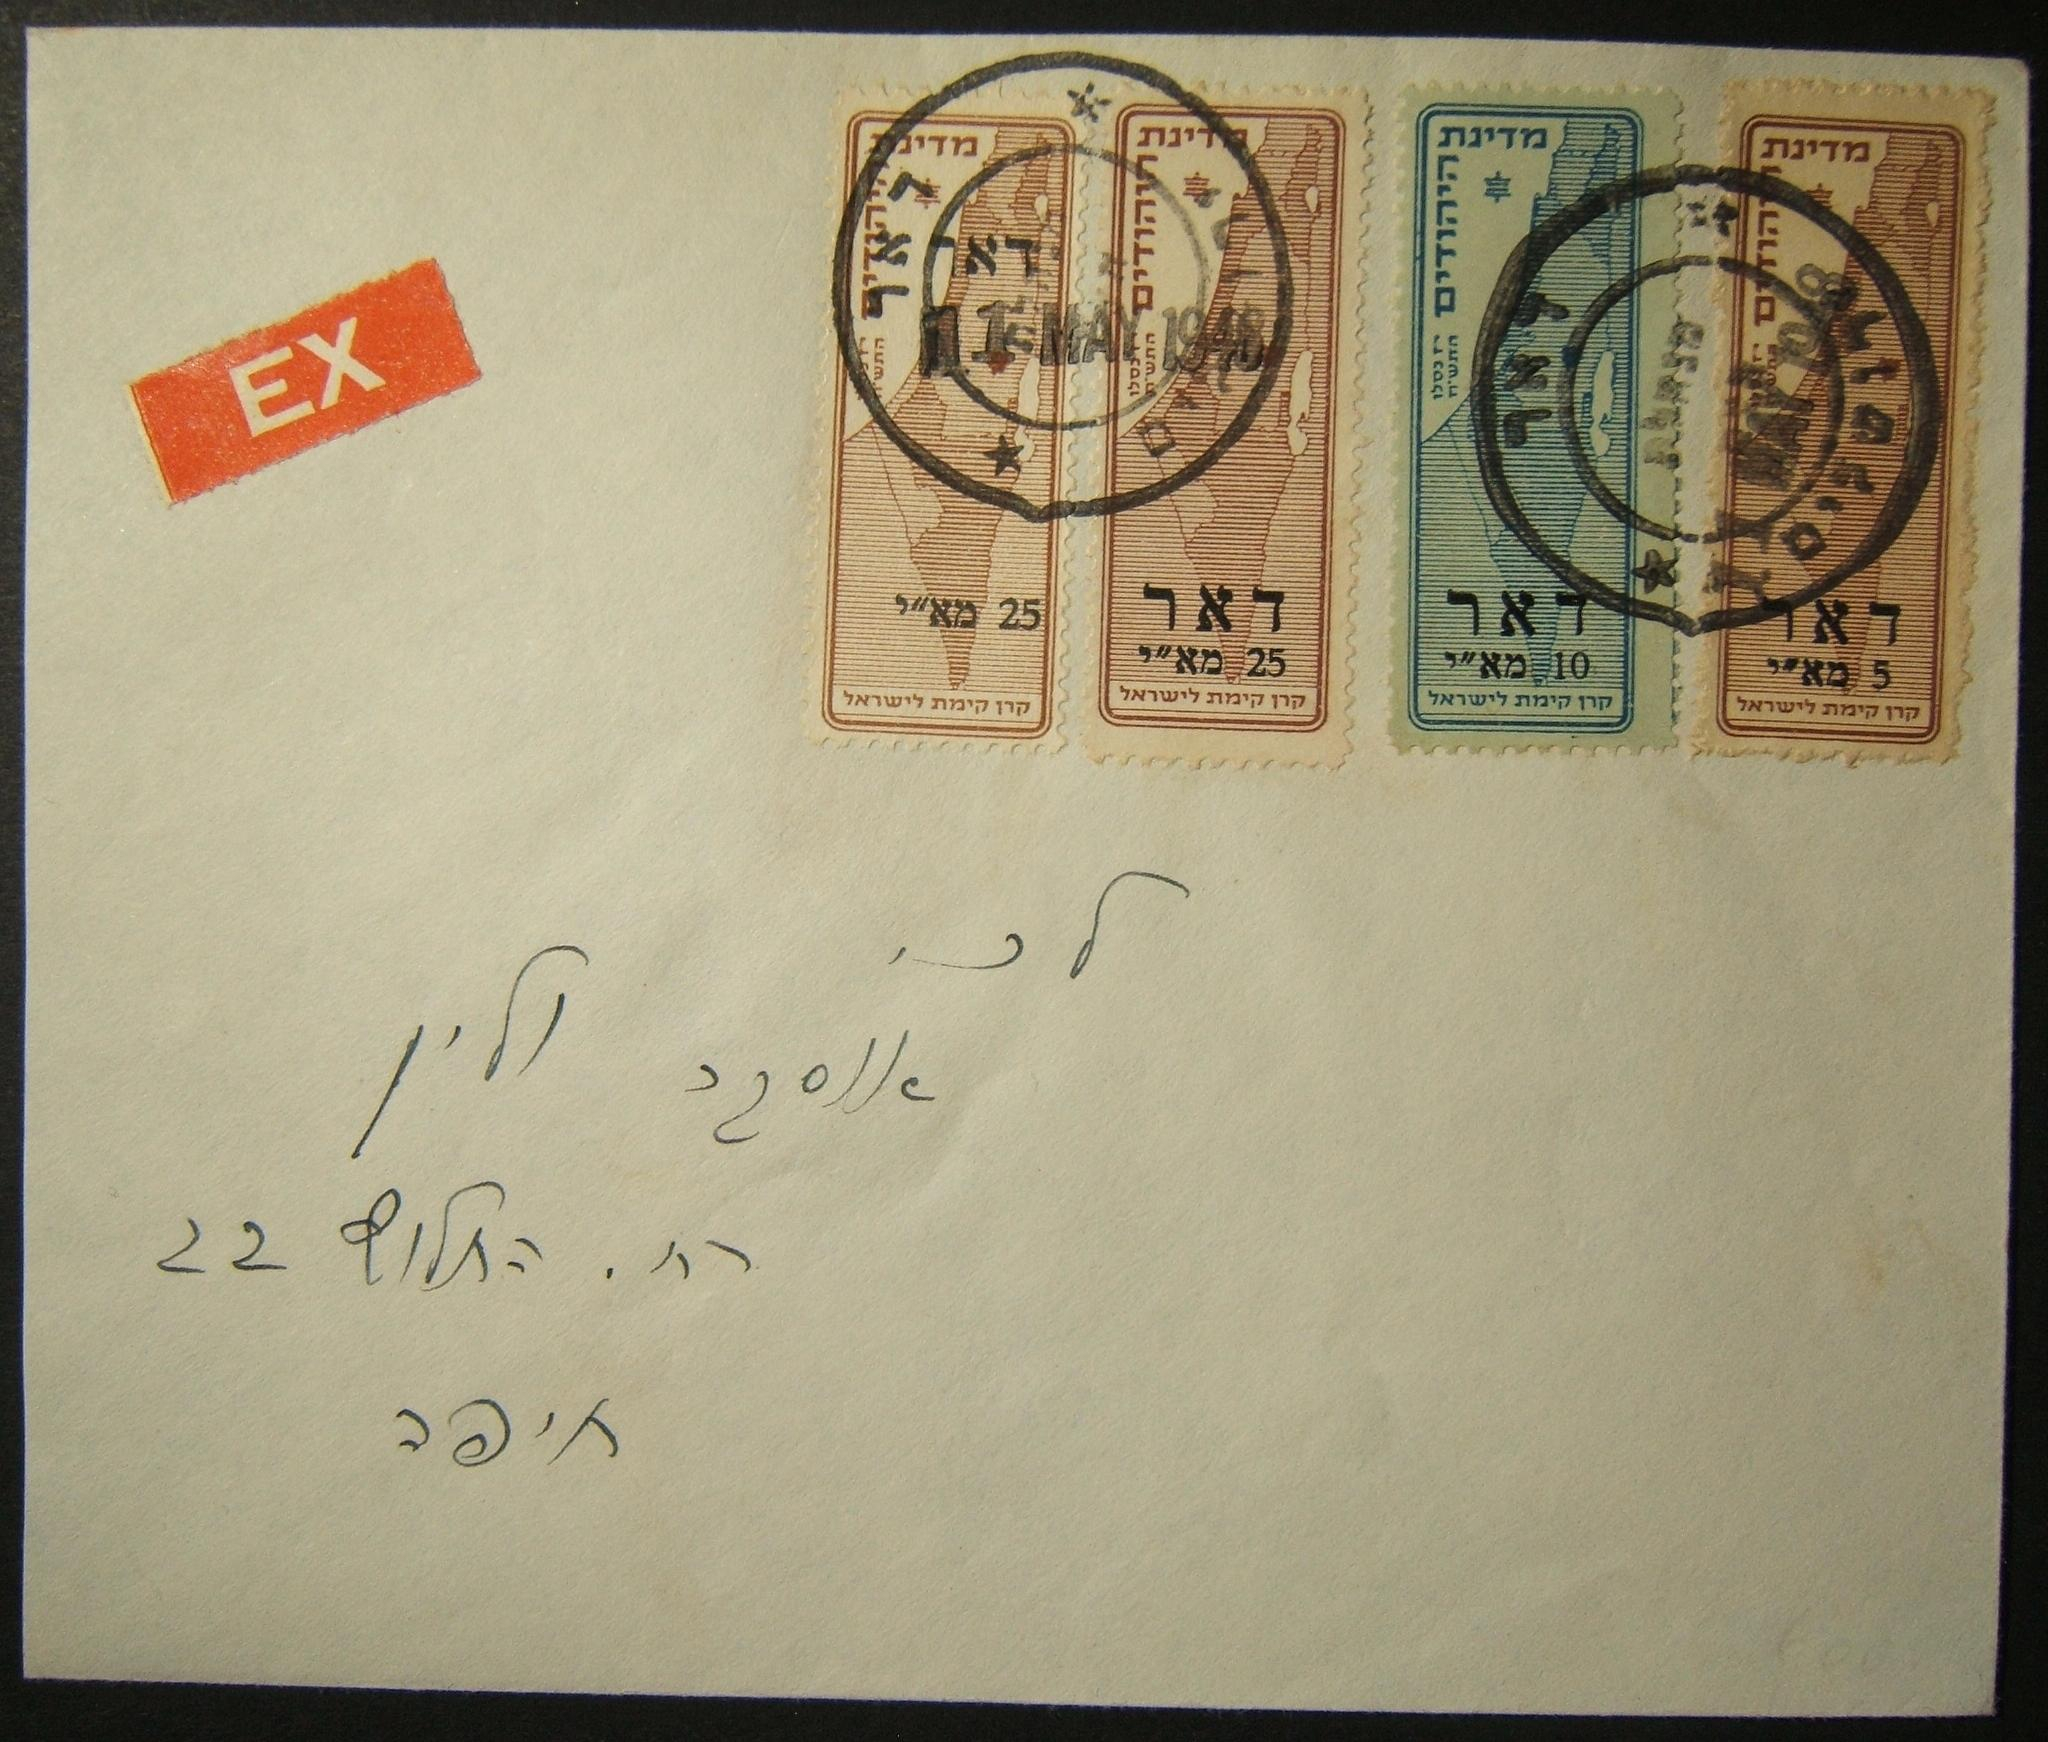 1948 1st convoy express mail from JERUSALEM to HAIFA with interim franks/postmarks